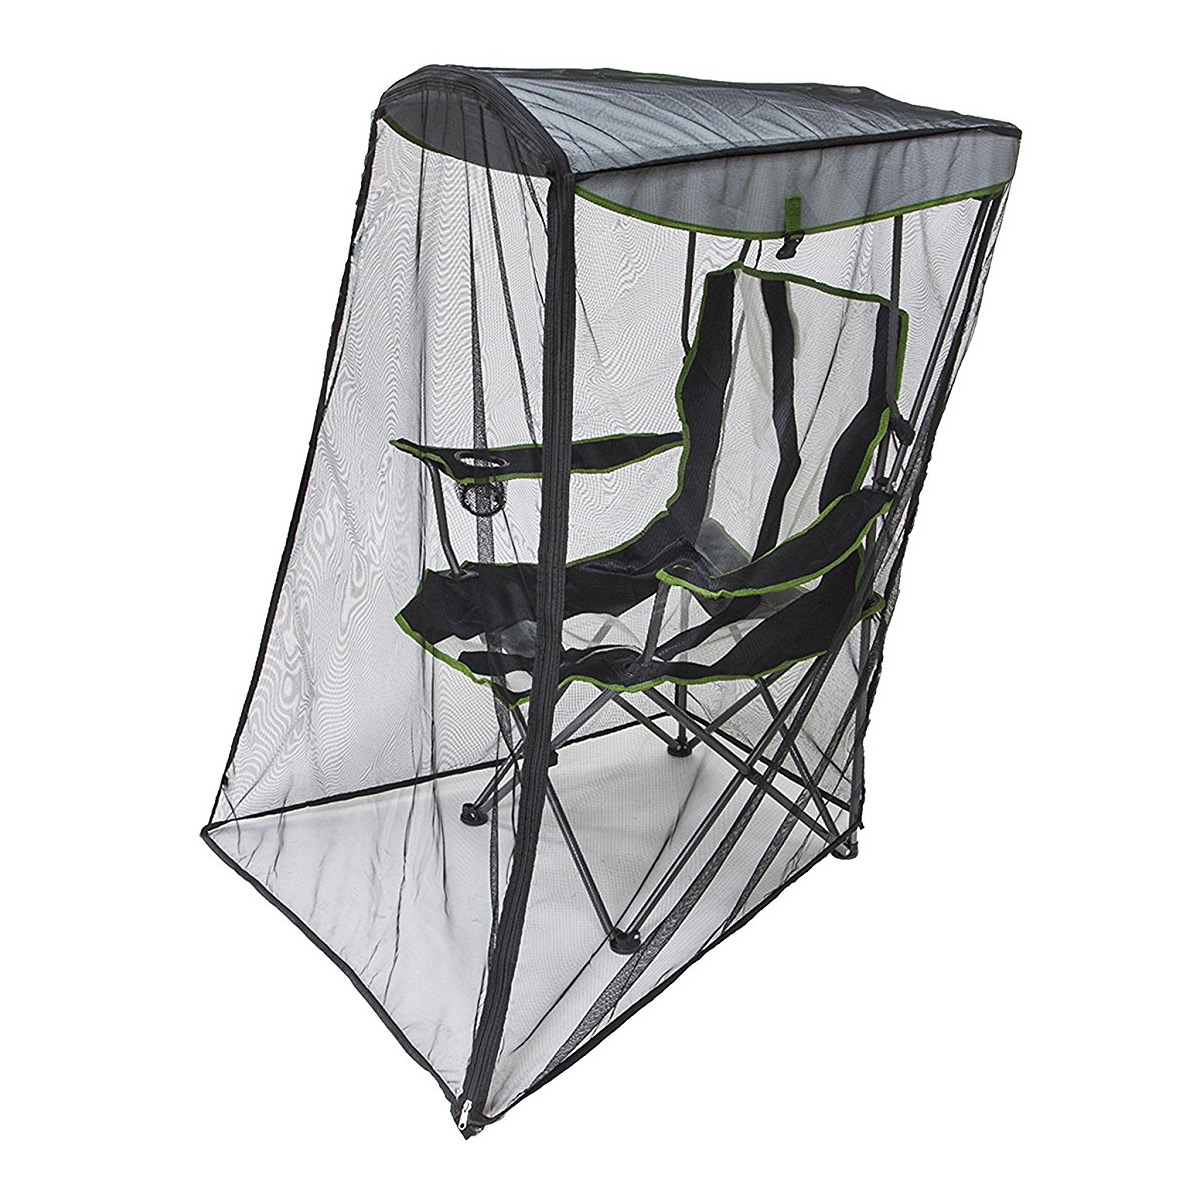 Kelsyus Canopy Chair With Removable Mosquito Bug Net